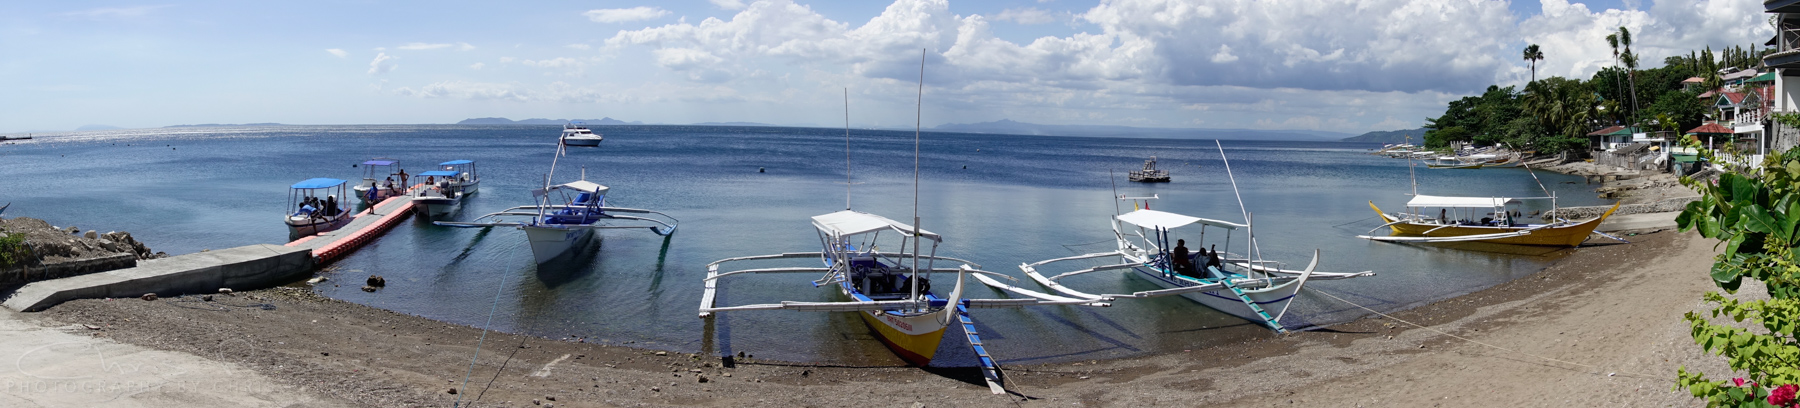 Banca boats ready to take divers to see the amazing cast of creatures awaiting in Anilao.